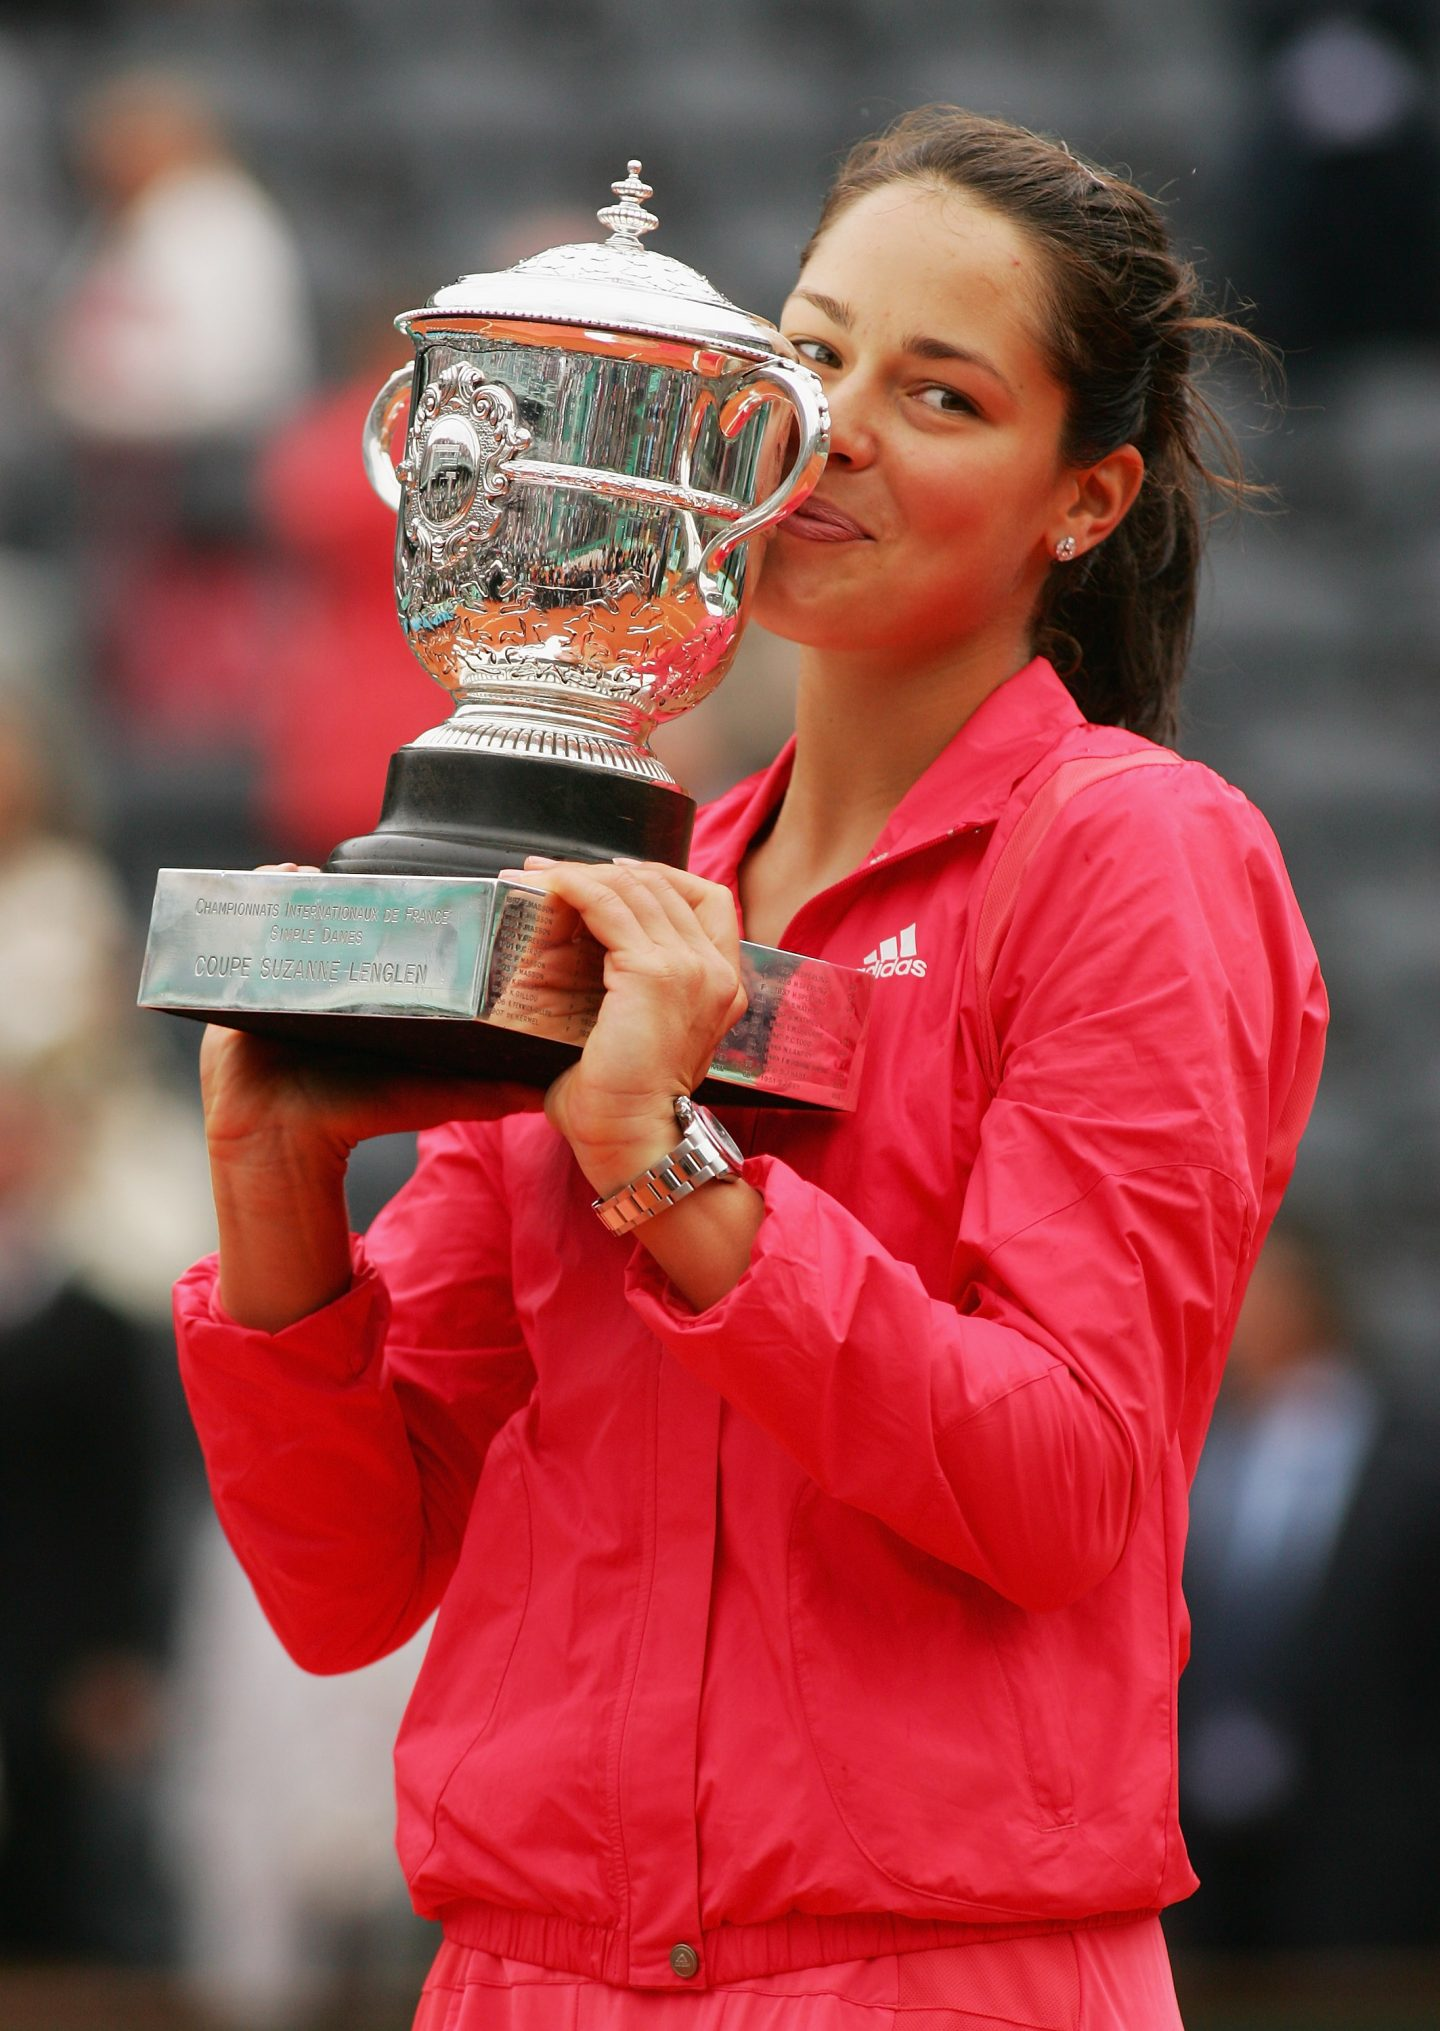 French Open - Roland Garros 2008 Ana Ivanovic champion interview listen to your heart